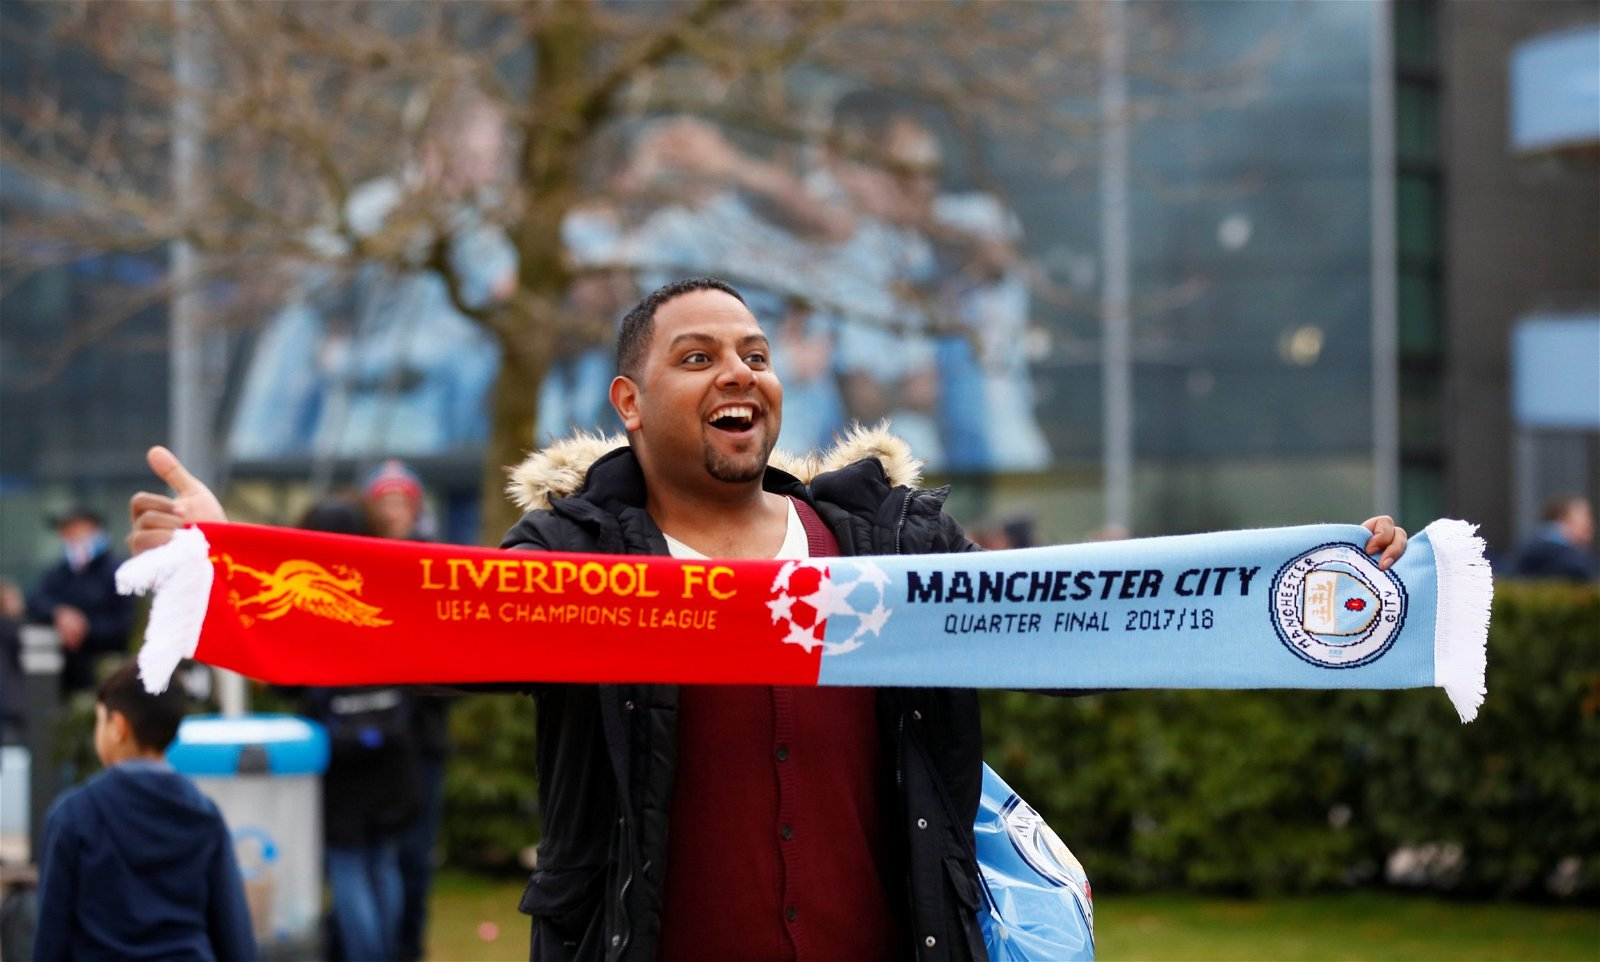 Fan with half and half scarf before Liverpool v Man City Champions League quarter final